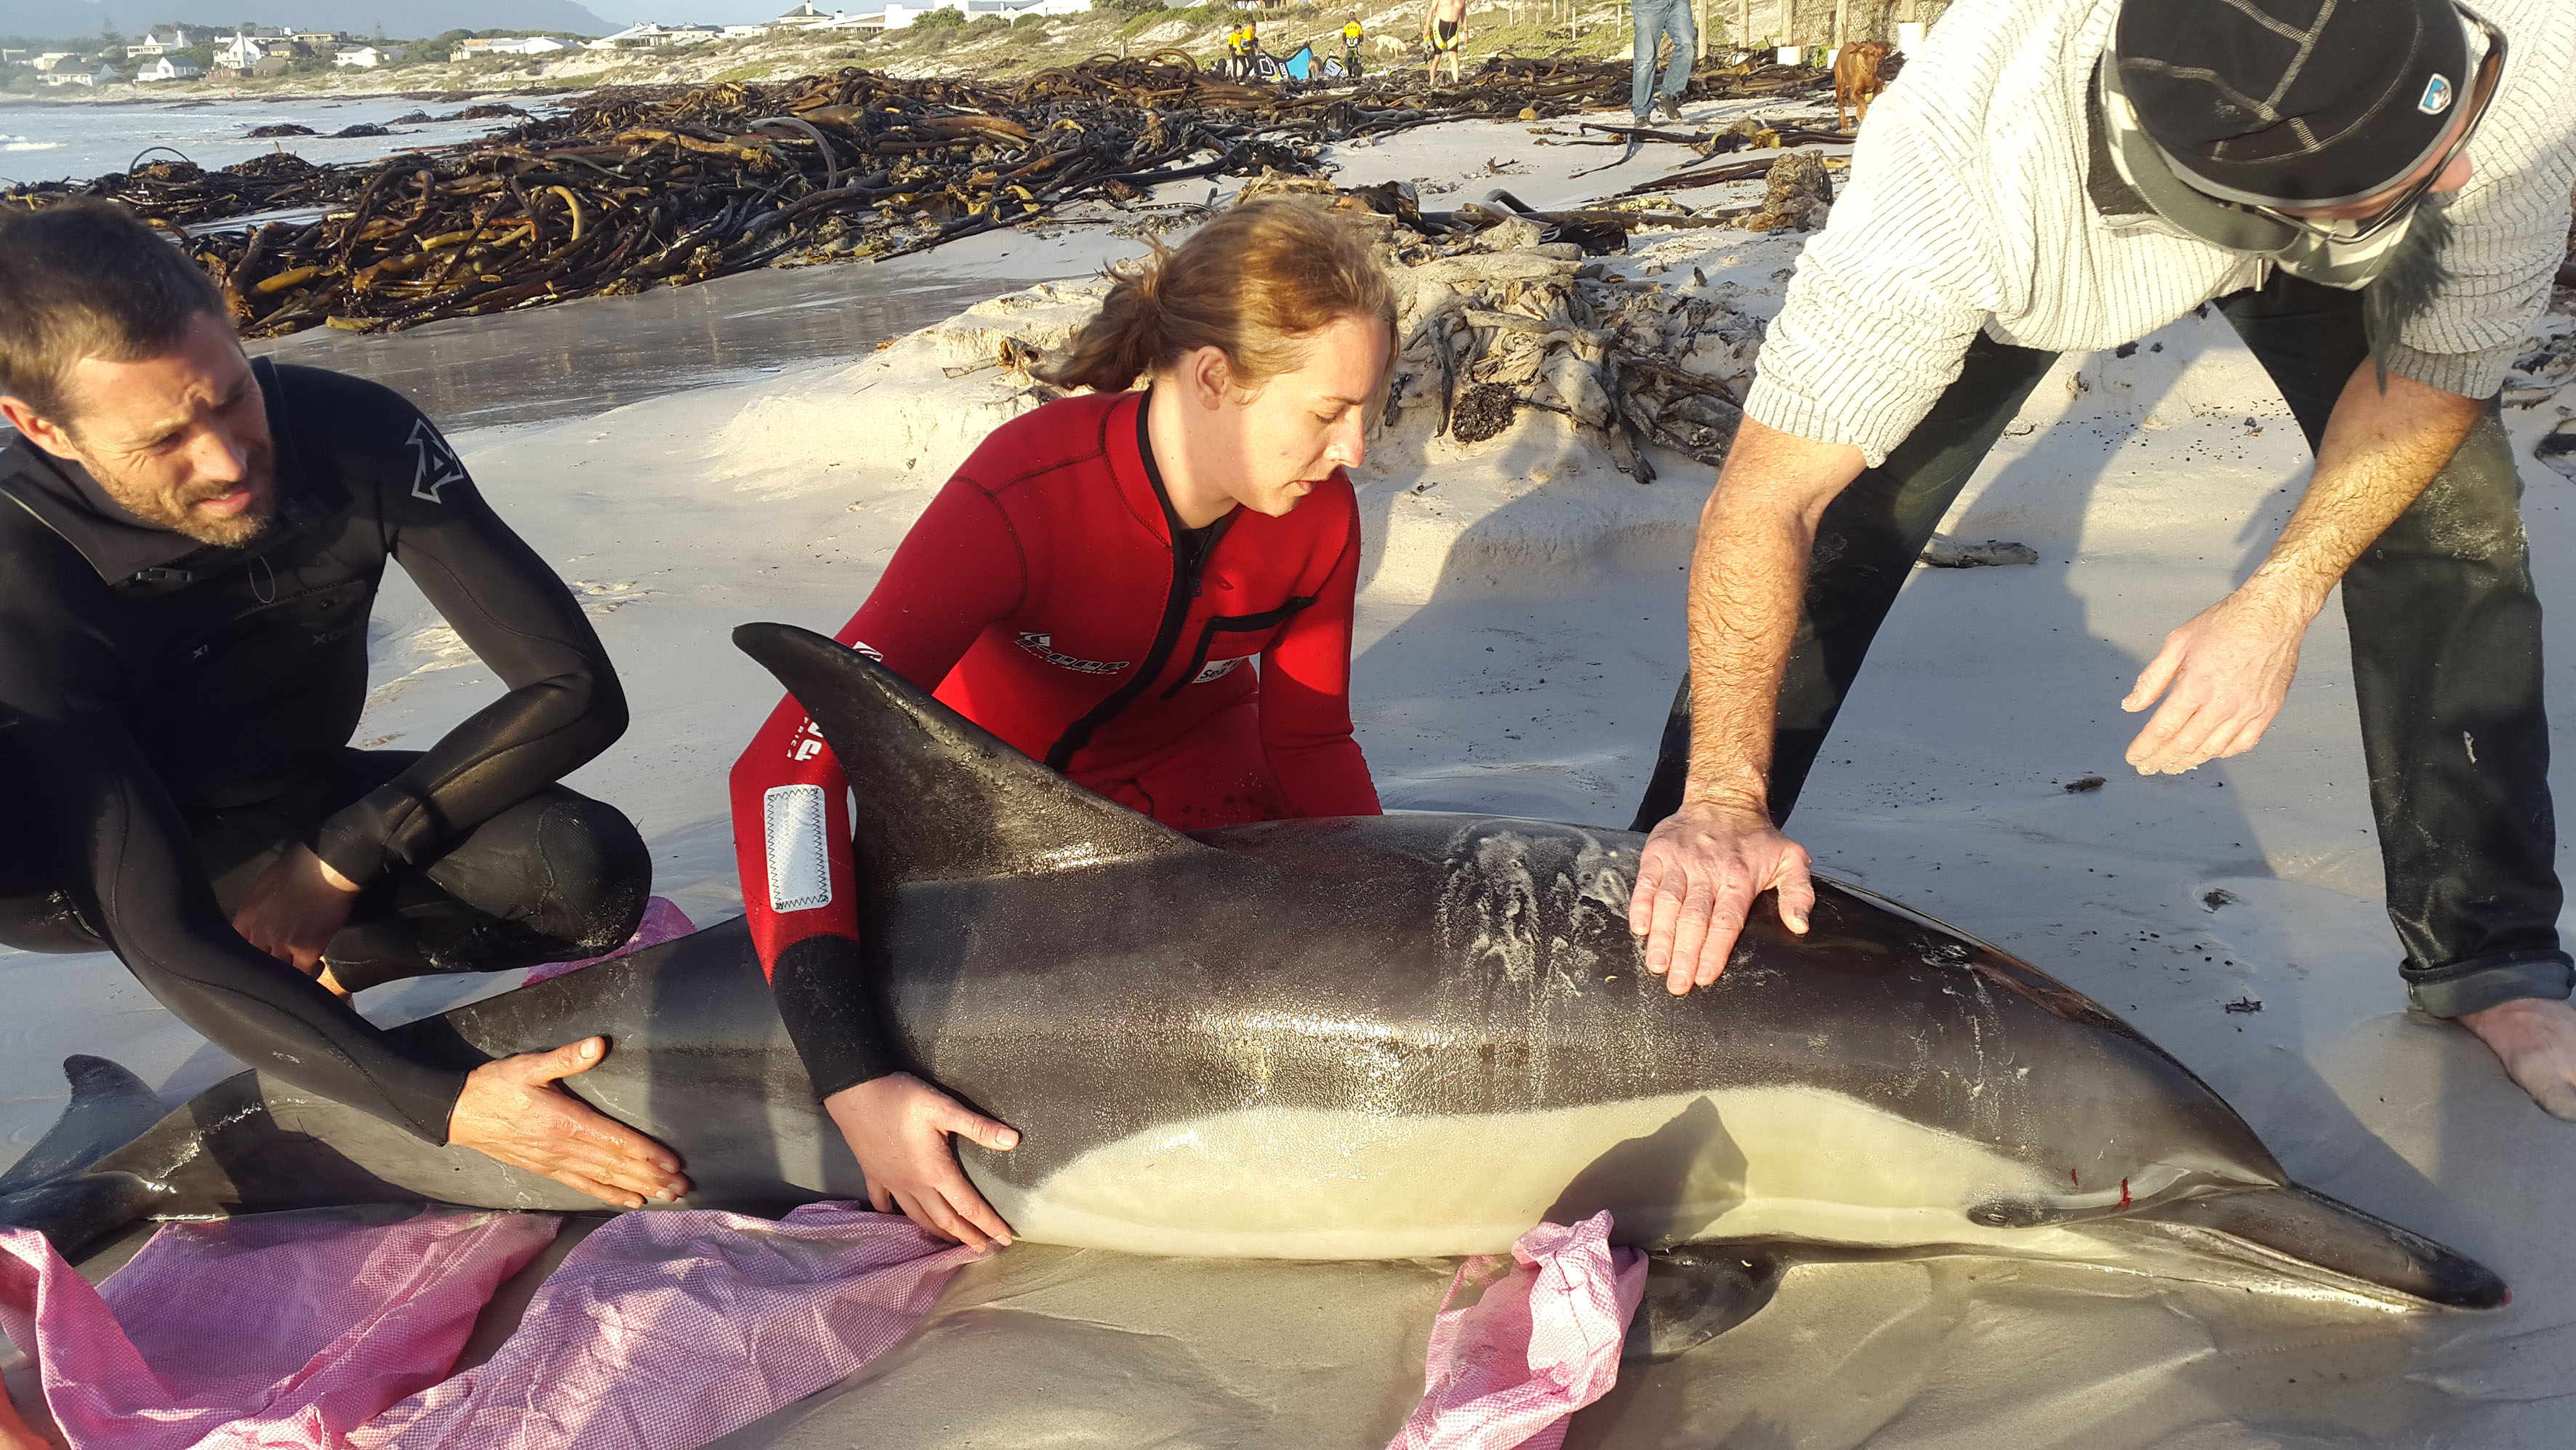 Kelly-Ann Irving of NSRI Kommetjie and bystanders on the scene at Long Beach, Kommetjie where this injured Common dolphin died. Picture Ian Klopper/NSRI.